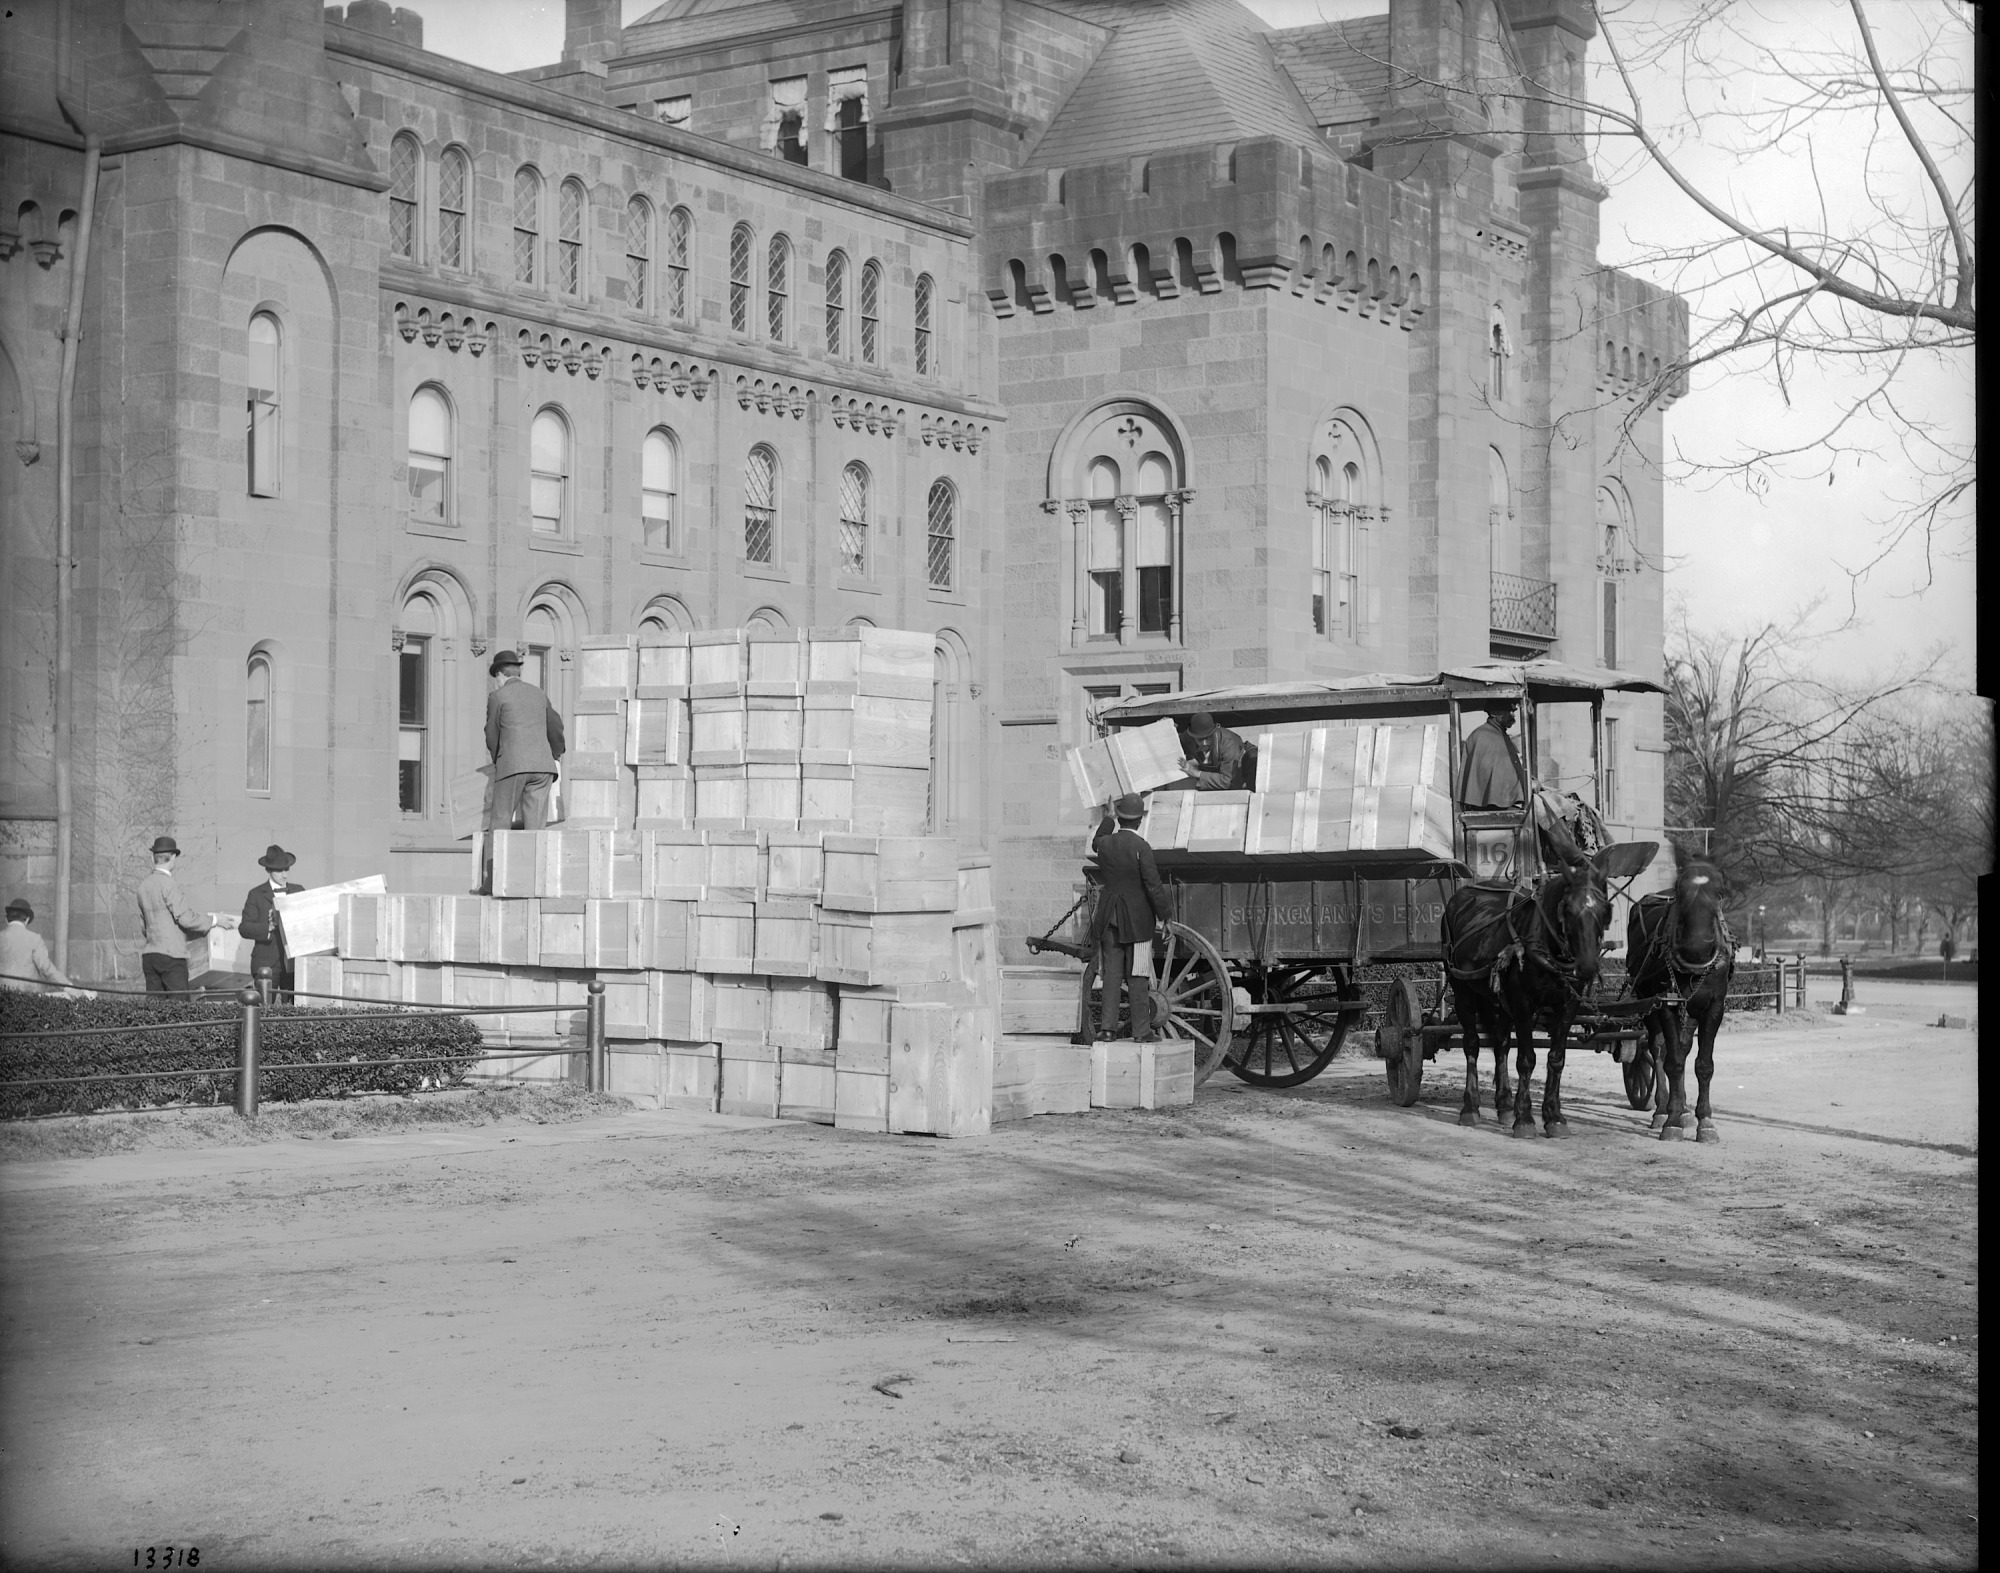 Photograph shows publications being shipped in the early 20th century. Smithsonian Institution Archives, negative number mah-13318.